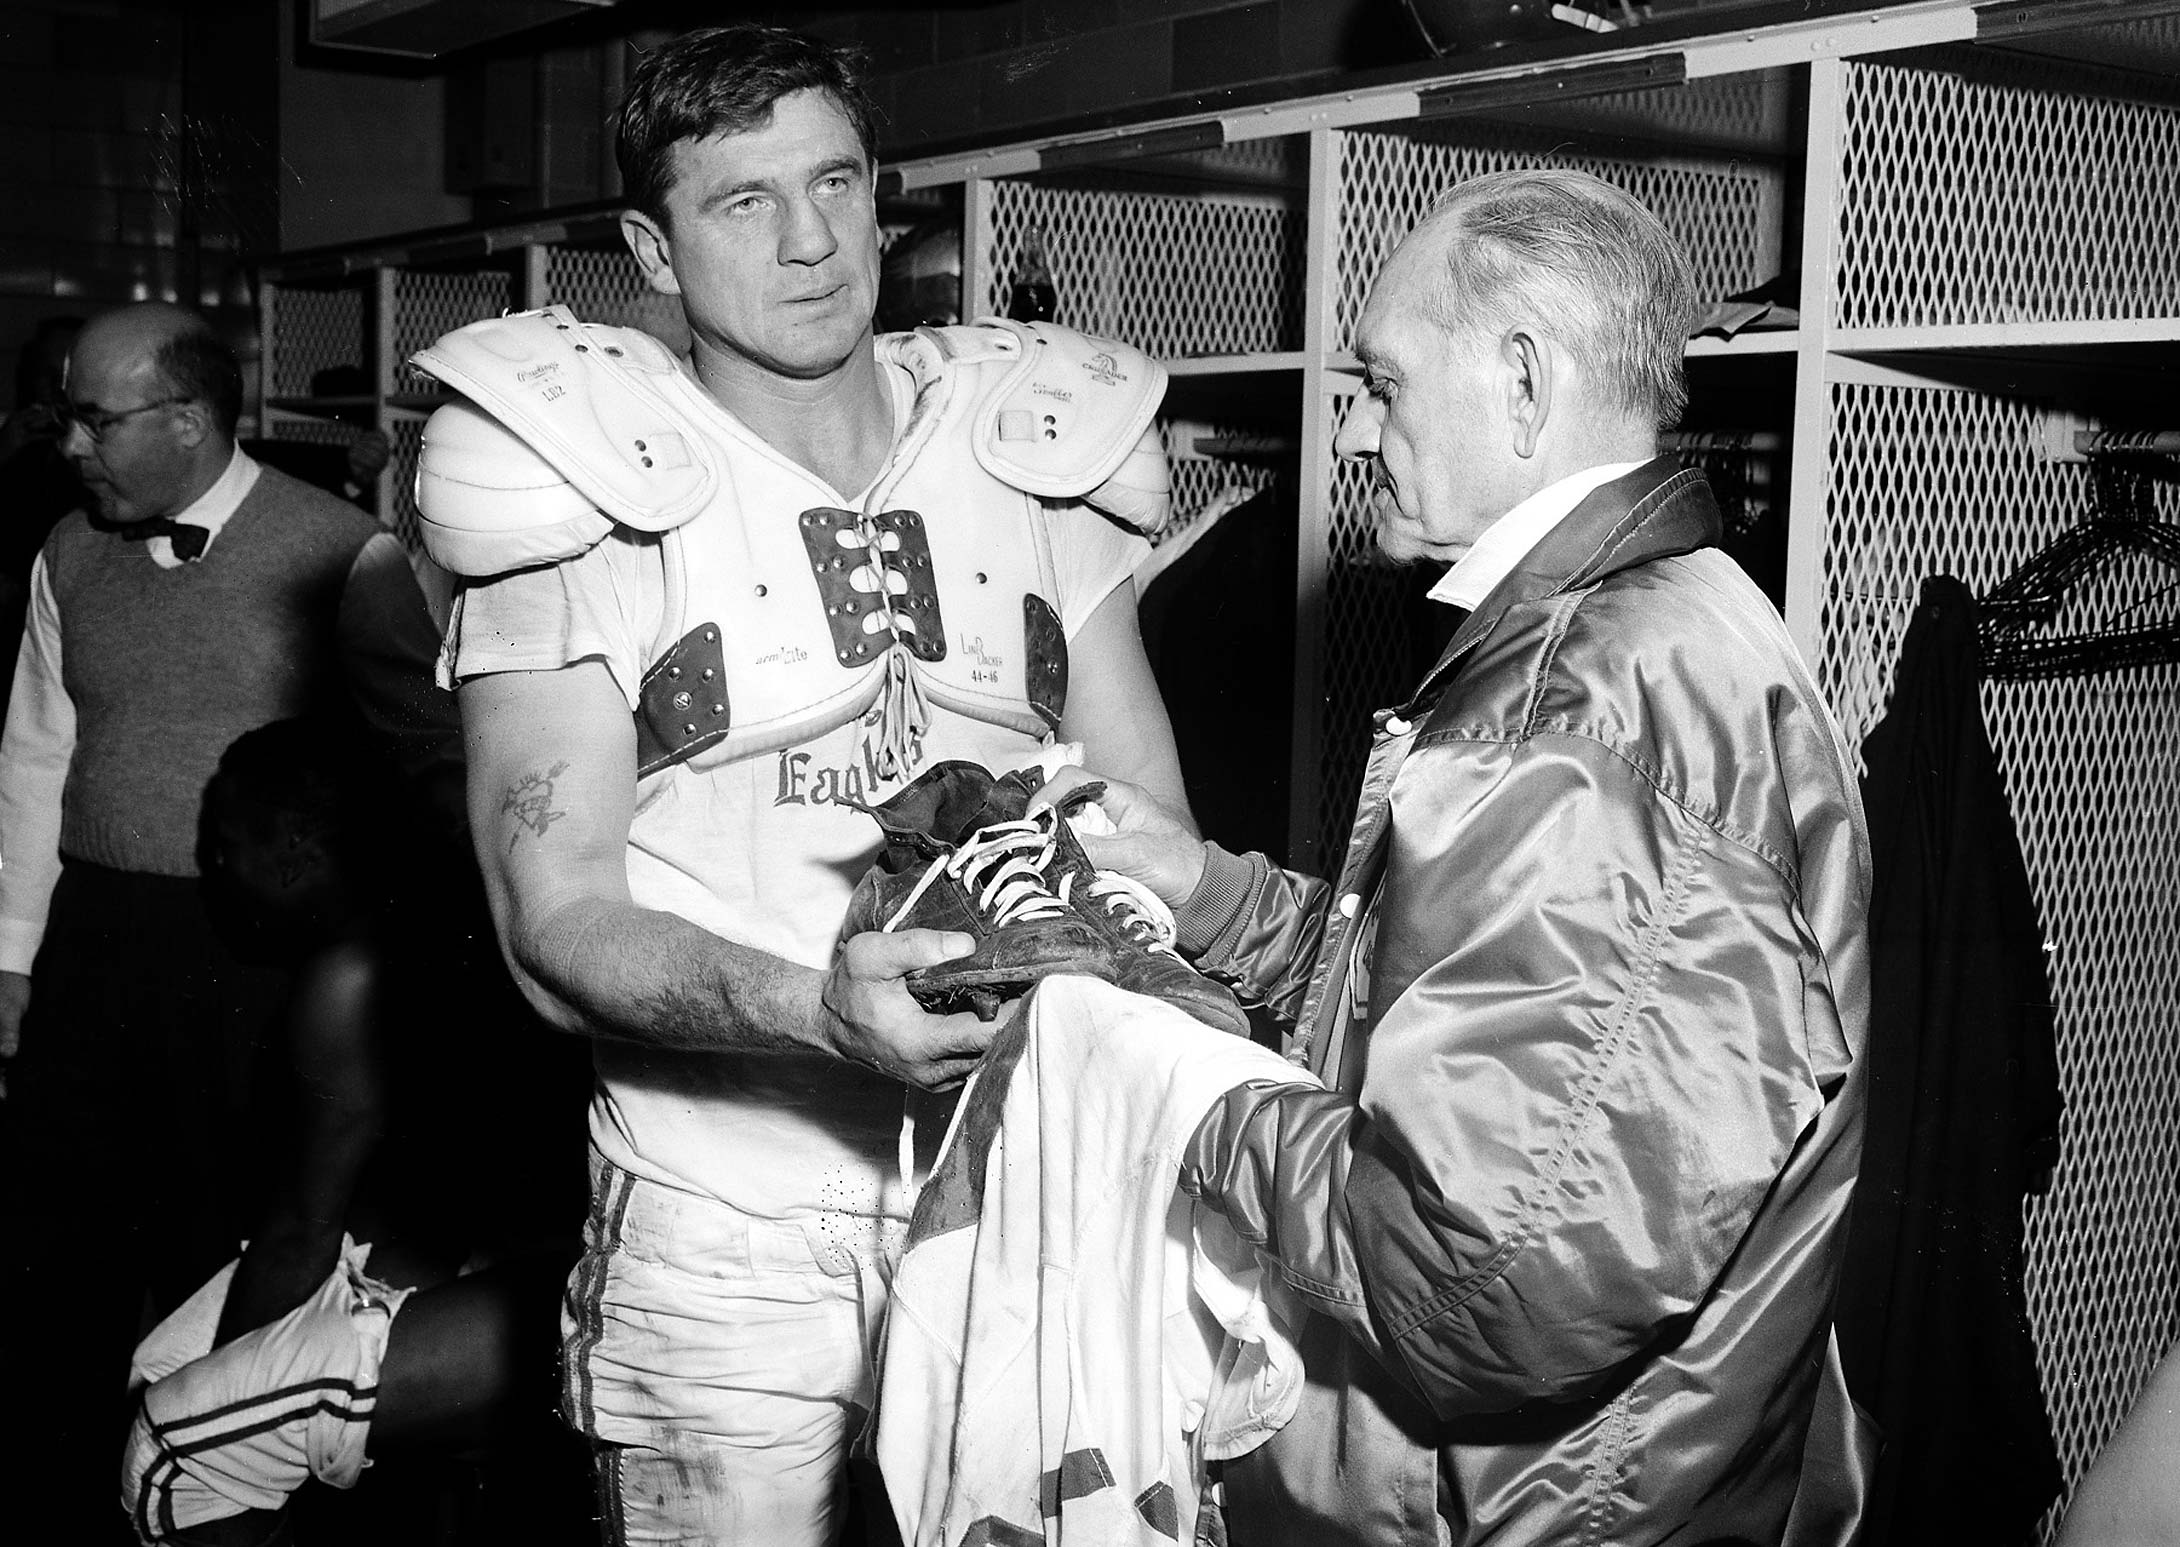 Chuck Bednarik hands his jersey and shoes to equipment manager Freddie Schubach after his last game so that they can be donated to the Hall of Fame.